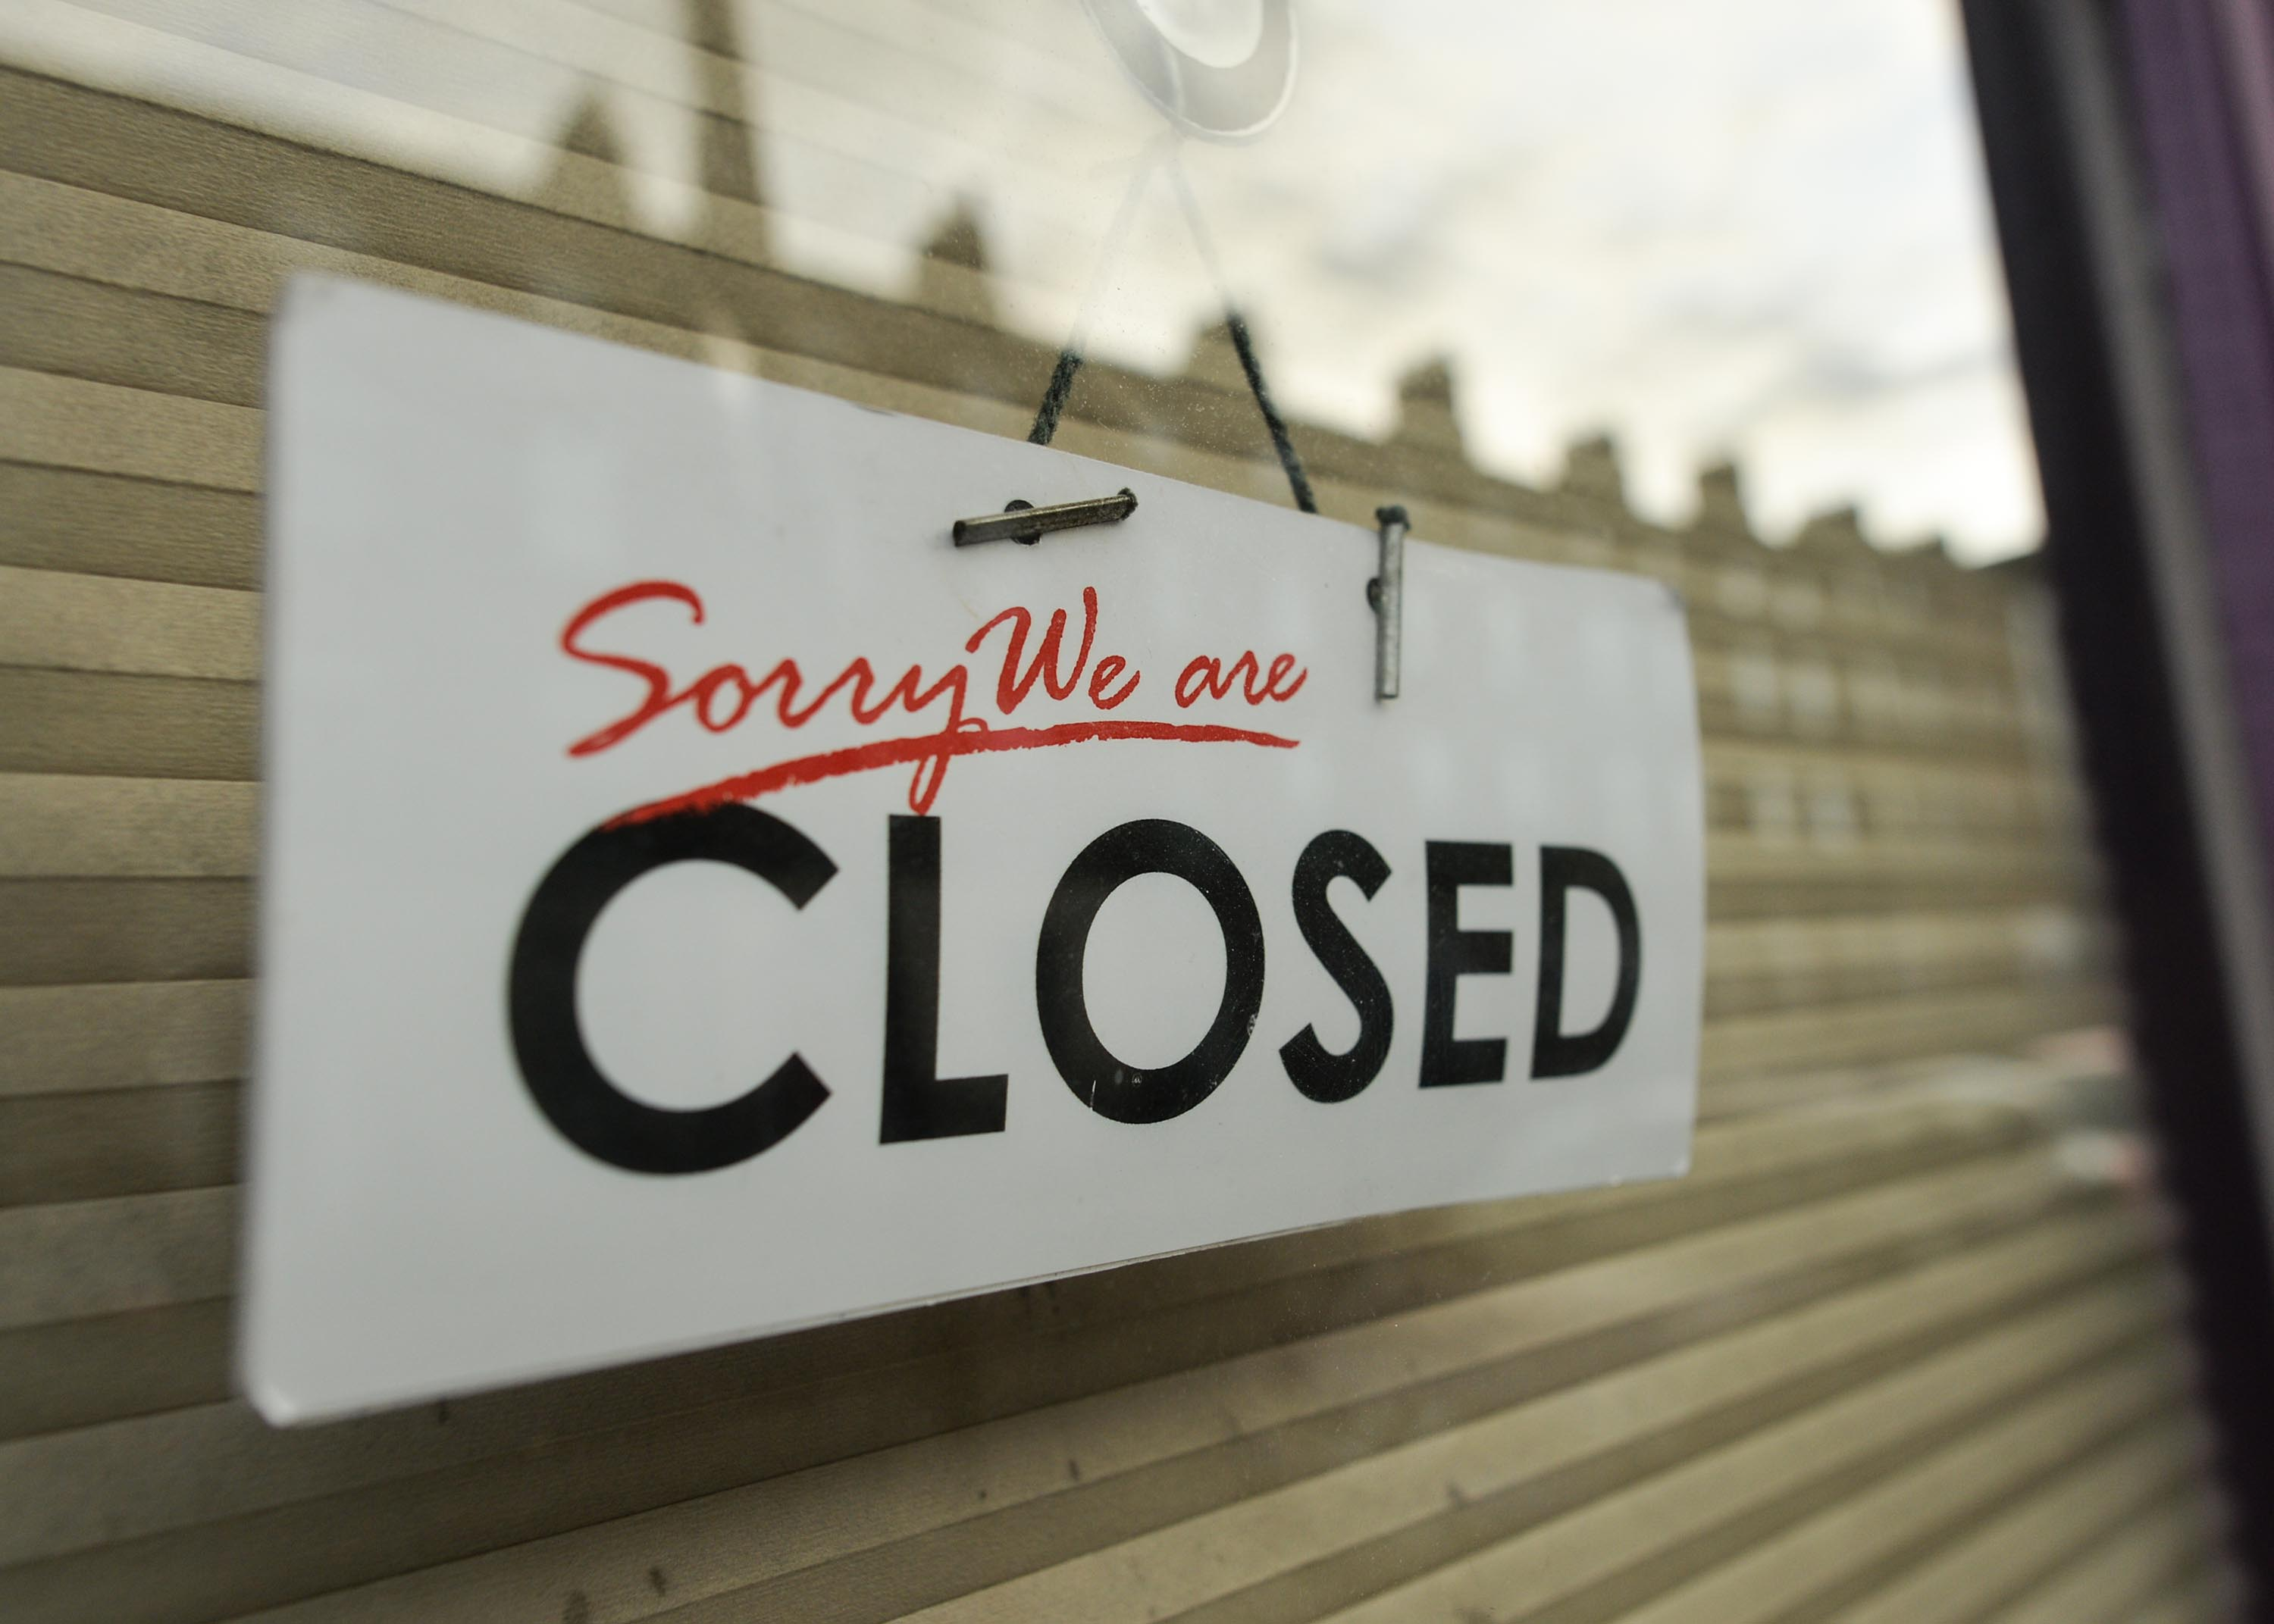 In this November 23, 2020 file photo, a closed sign is seen in a shop window in Dublin's city centre.